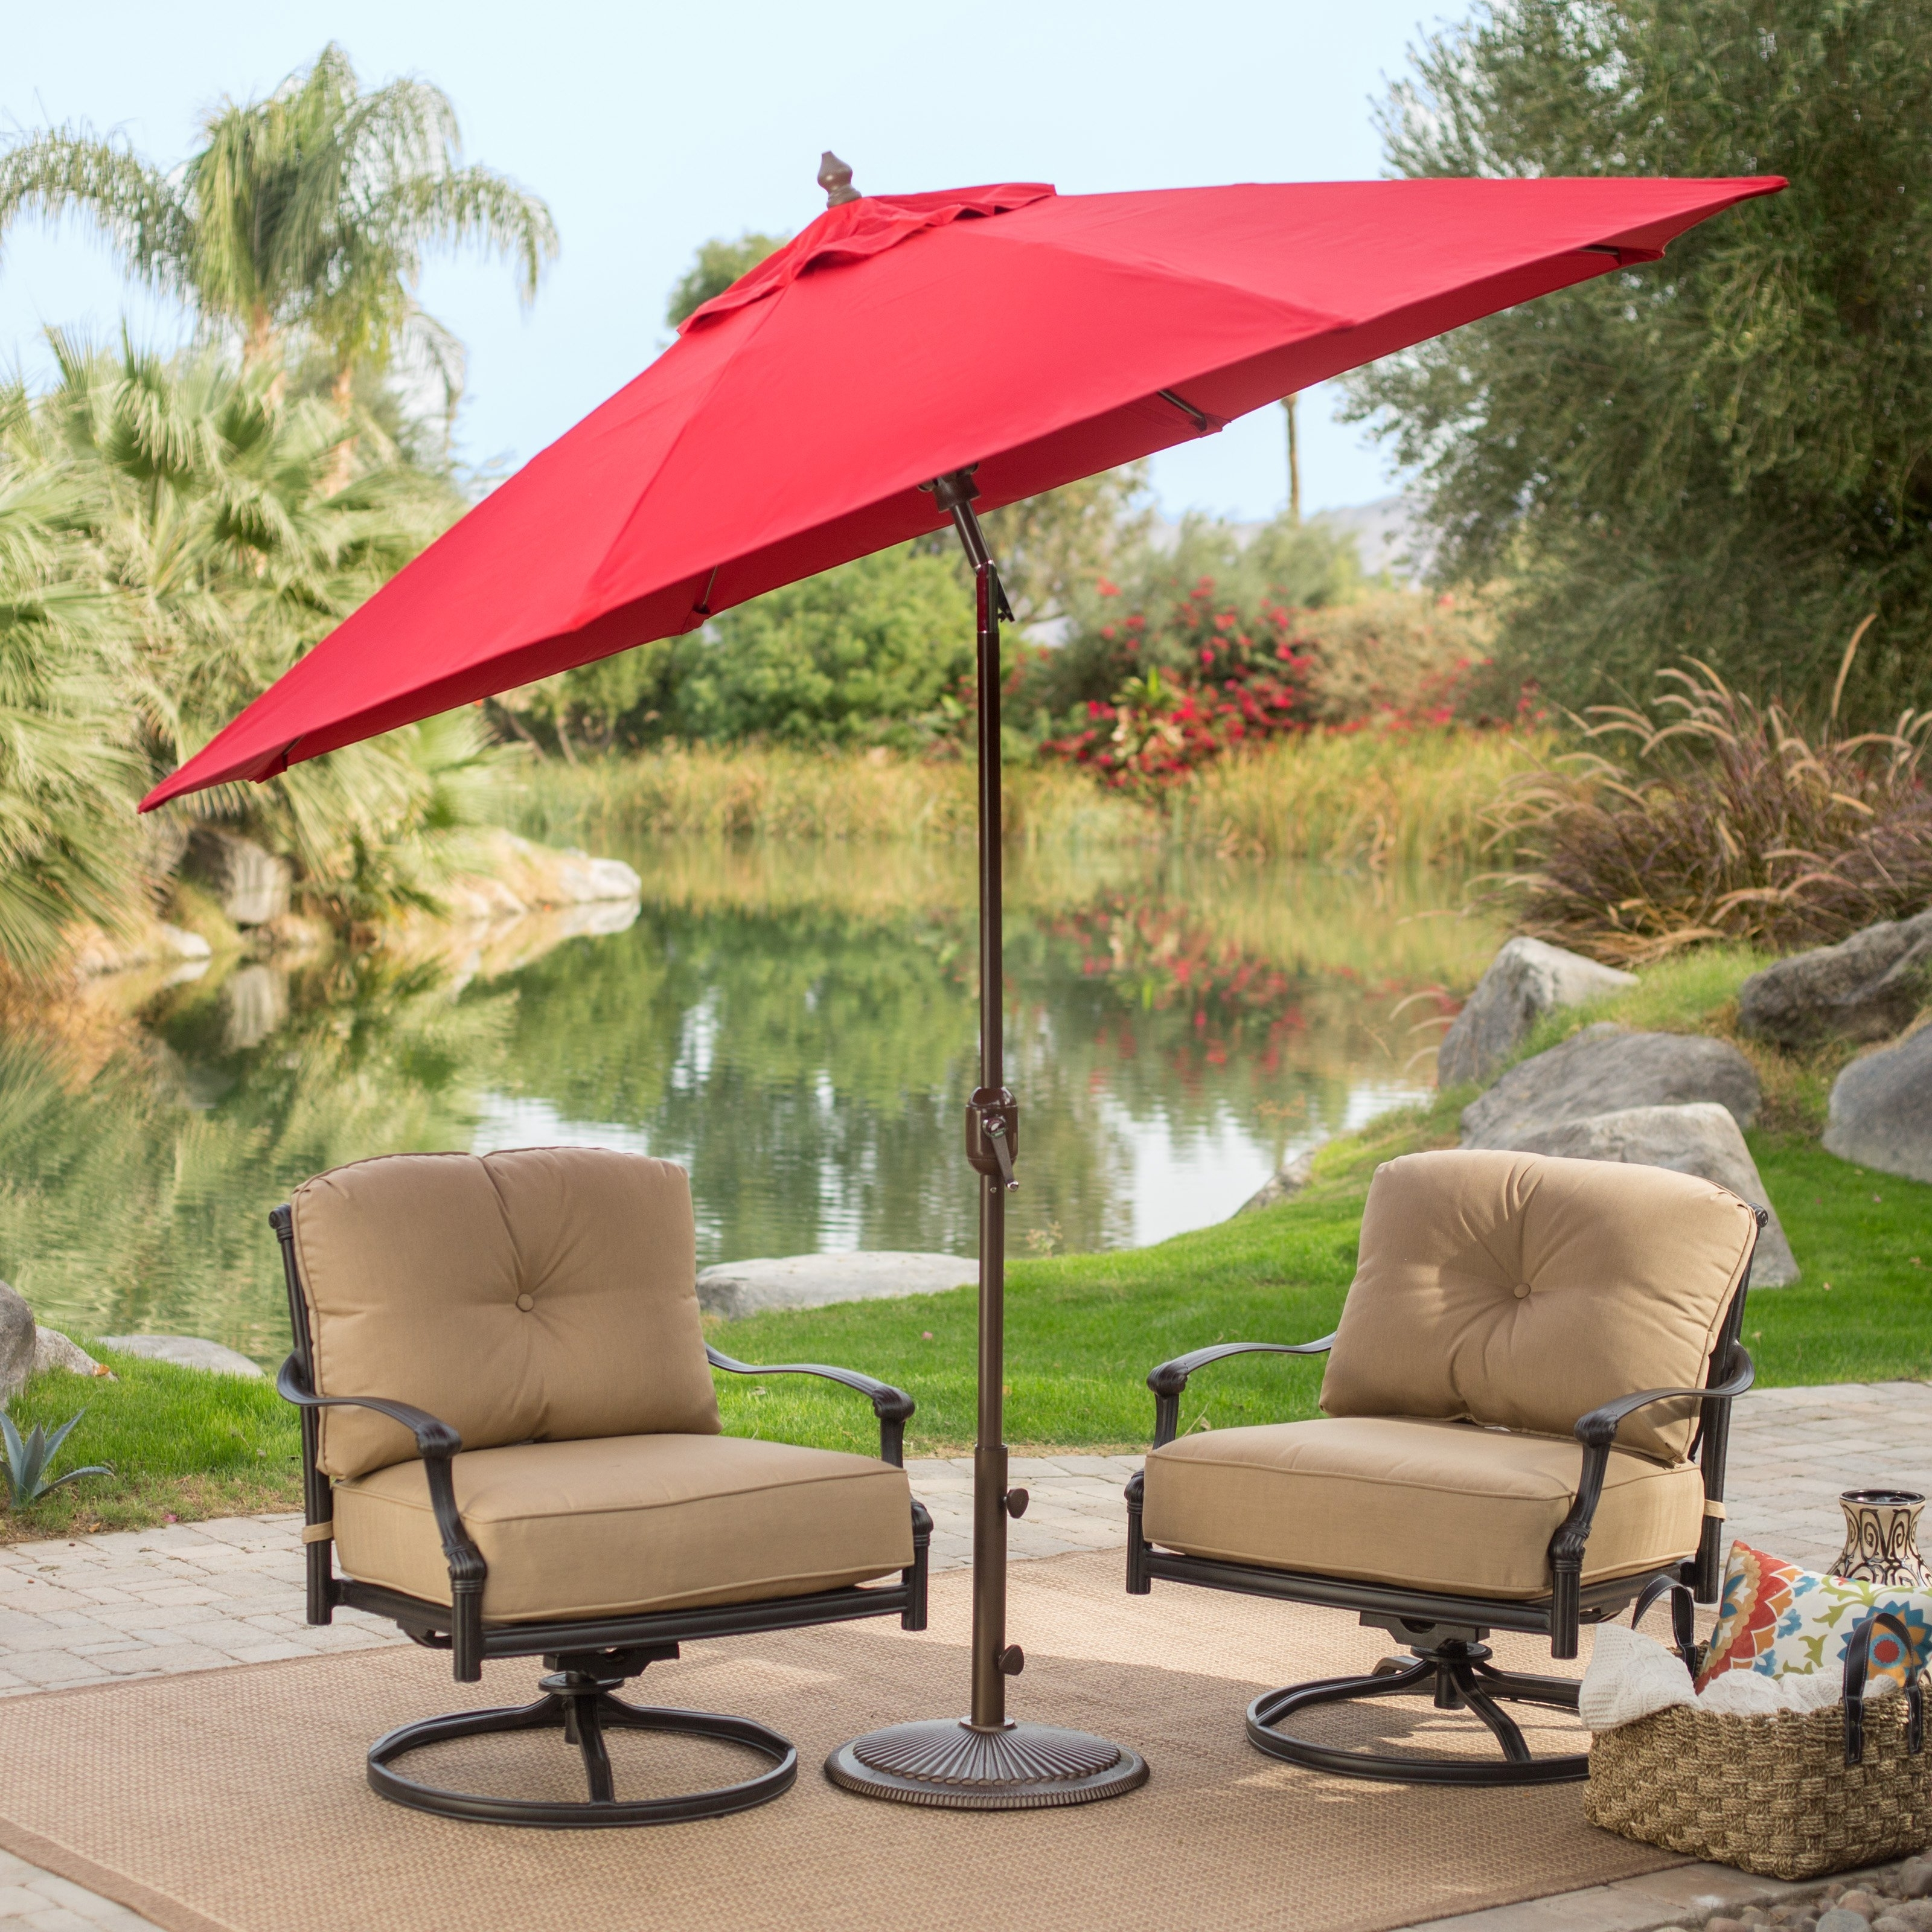 Wind Resistant Patio Umbrellas Intended For Most Up To Date Patio Umbrella: Best Umbrella For You – Bellissimainteriors (View 13 of 20)